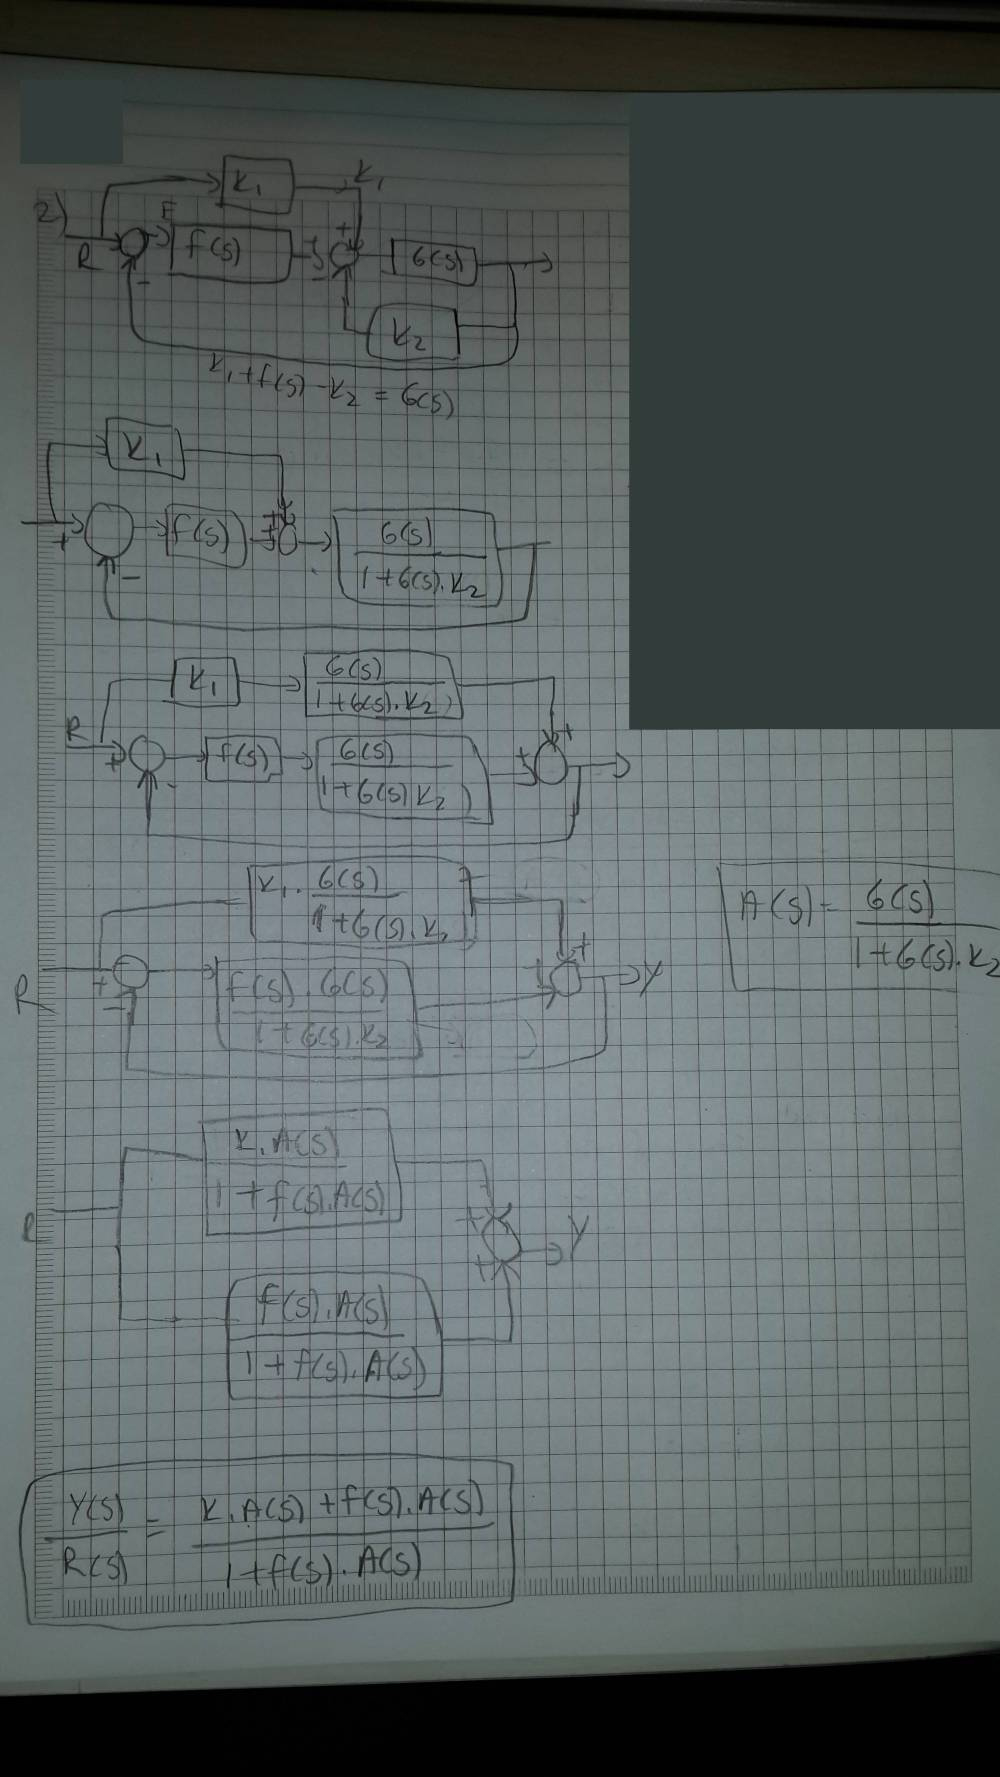 medium resolution of initial block diagram after i tried to reduce it